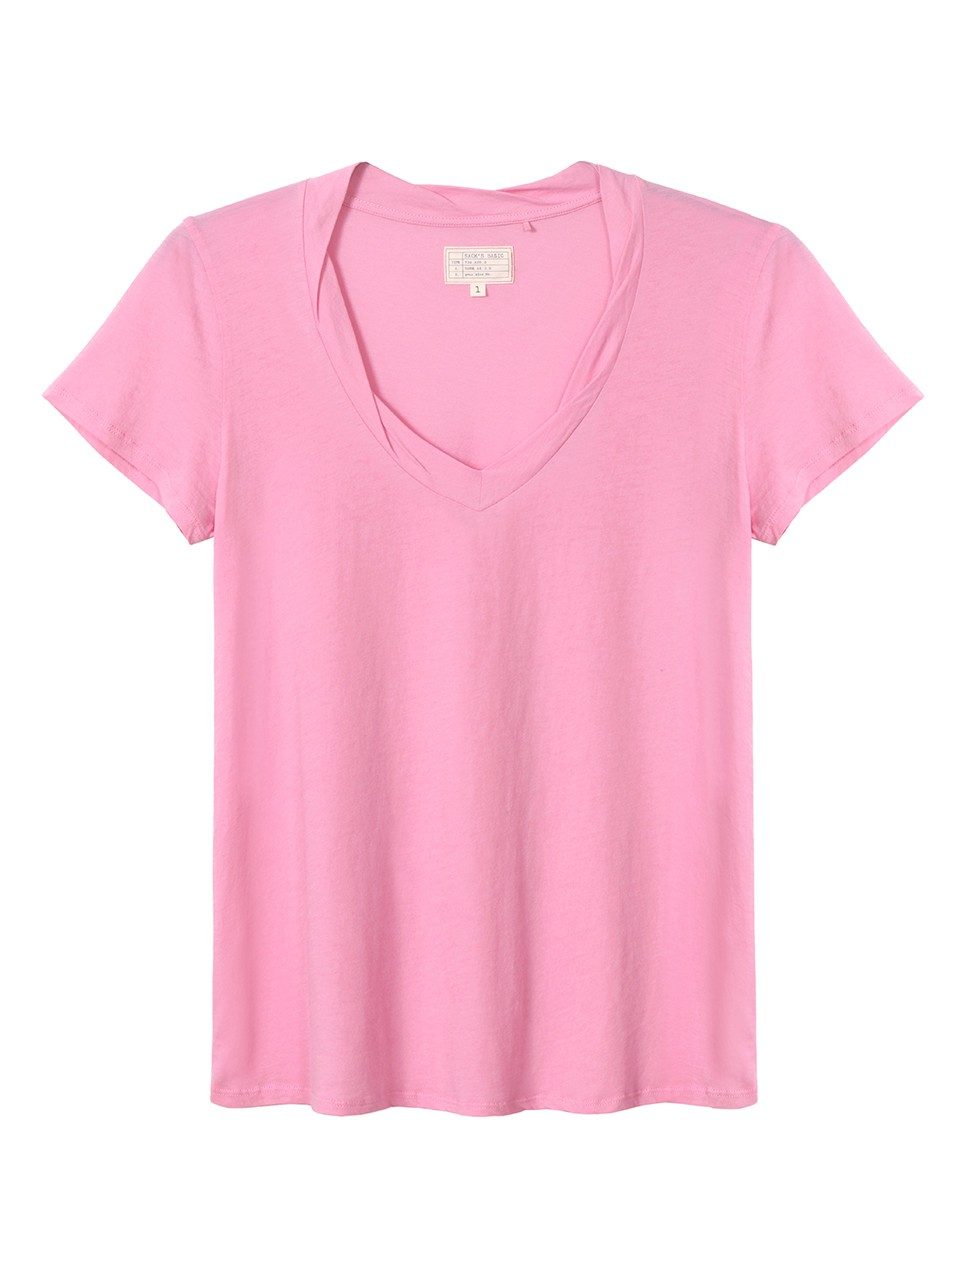 Grace V Neck 100% Cotton T-shirt